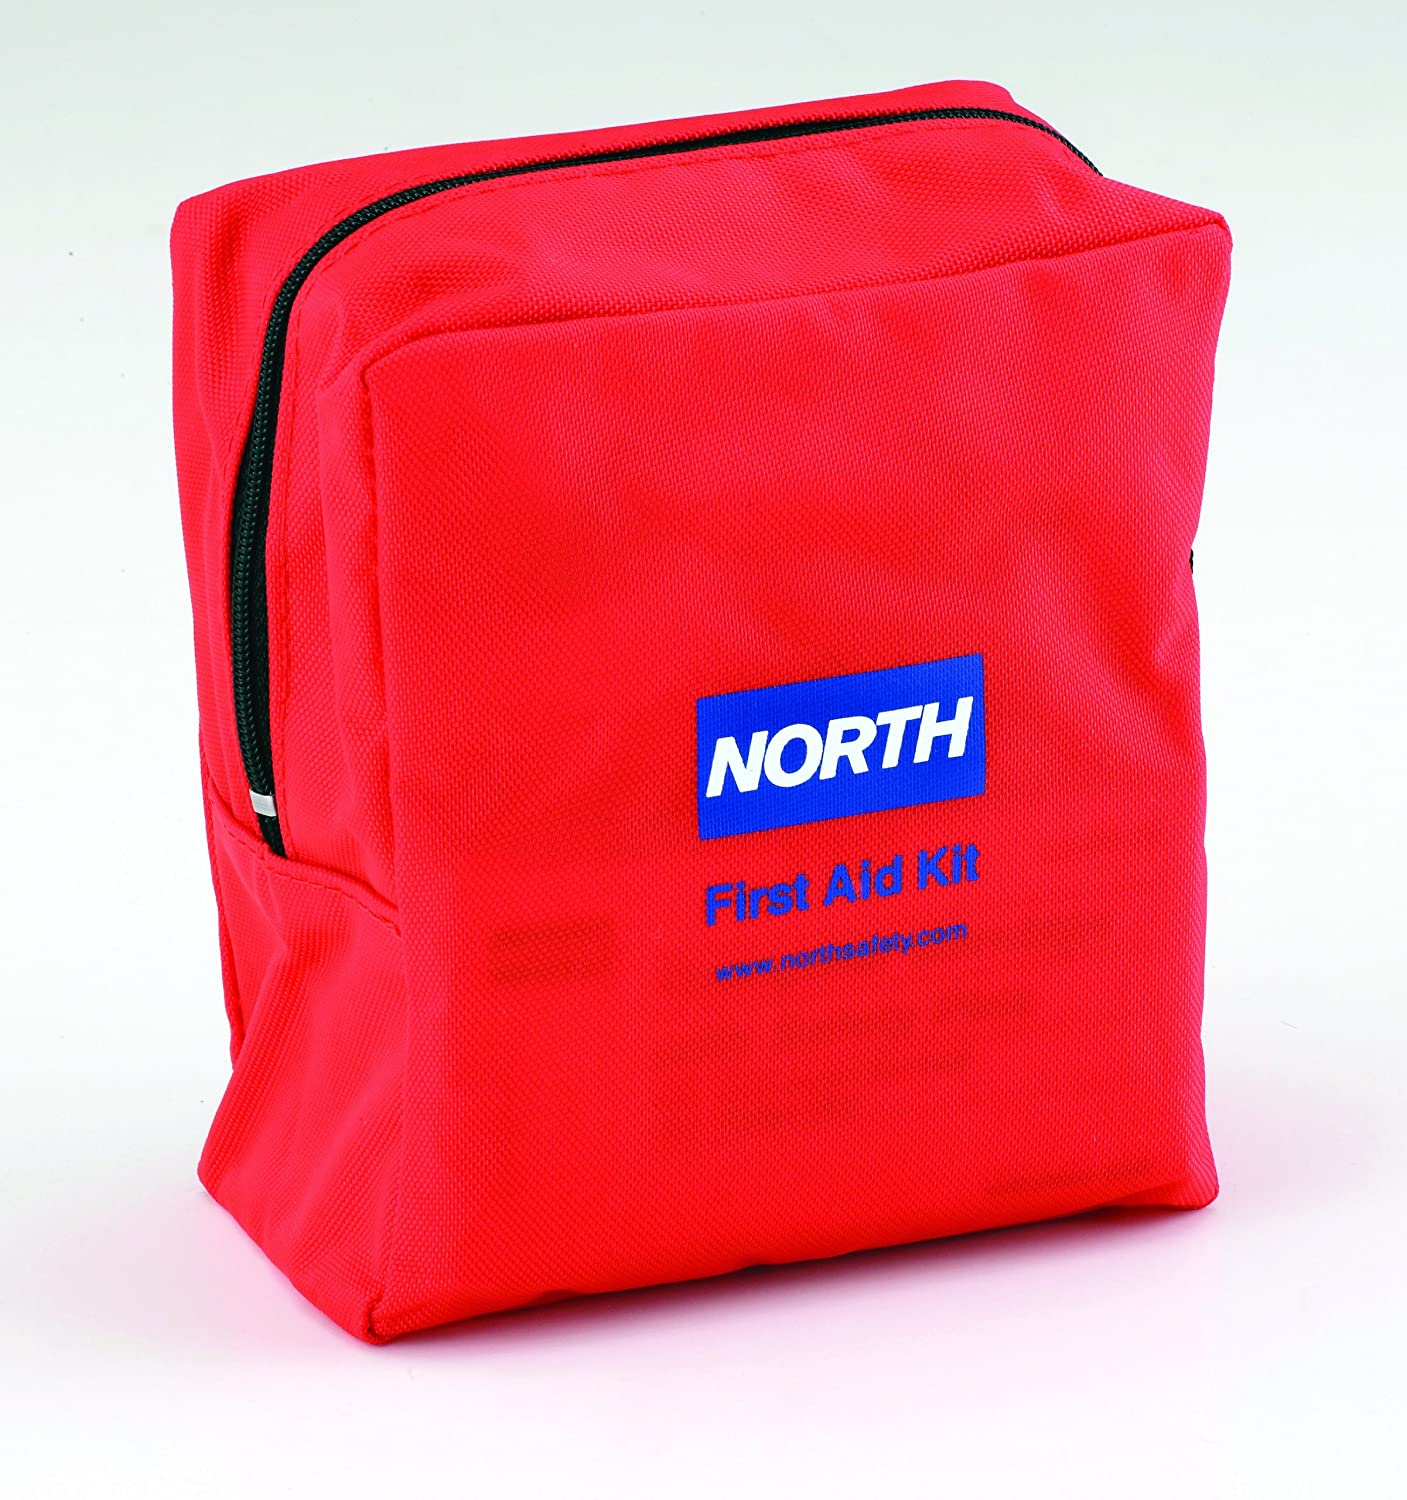 North by Honeywell 018502-4220 Soft Pack, Redicare, Small